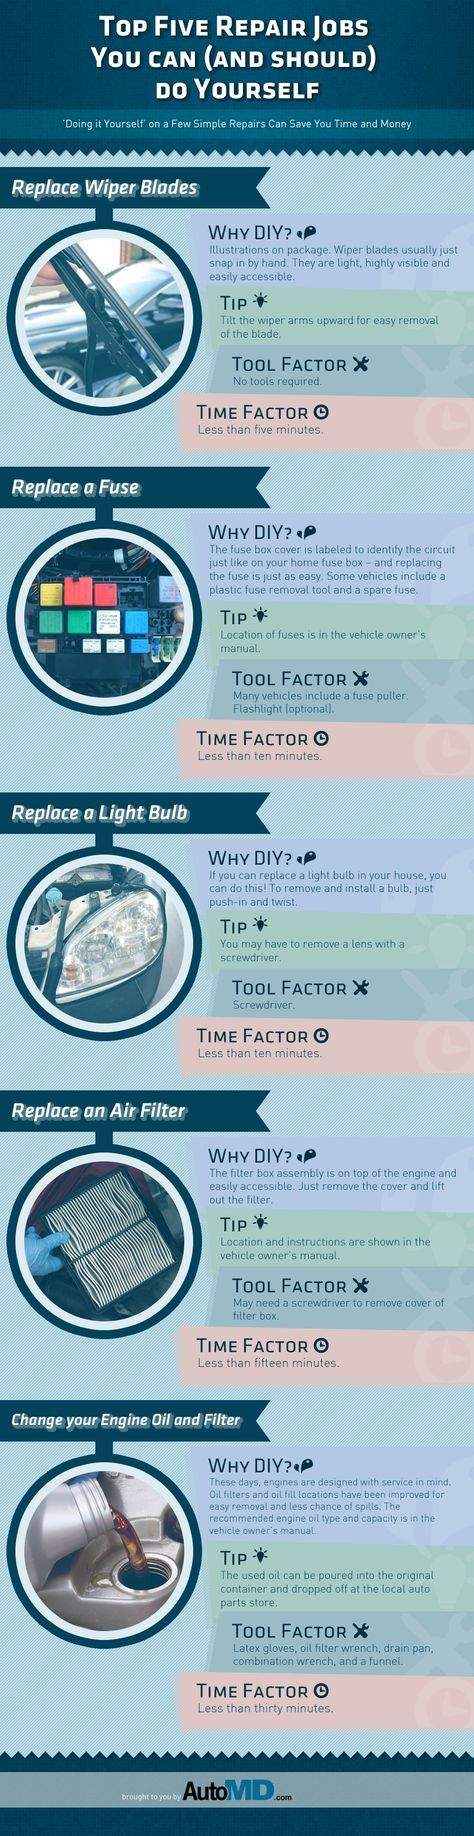 39 best diy auto images on pinterest car brake repair car repair its national car care month here are the top 5 repair jobs you can do yourself or bring your car into crippen buick gmc mazda volvo solutioingenieria Images